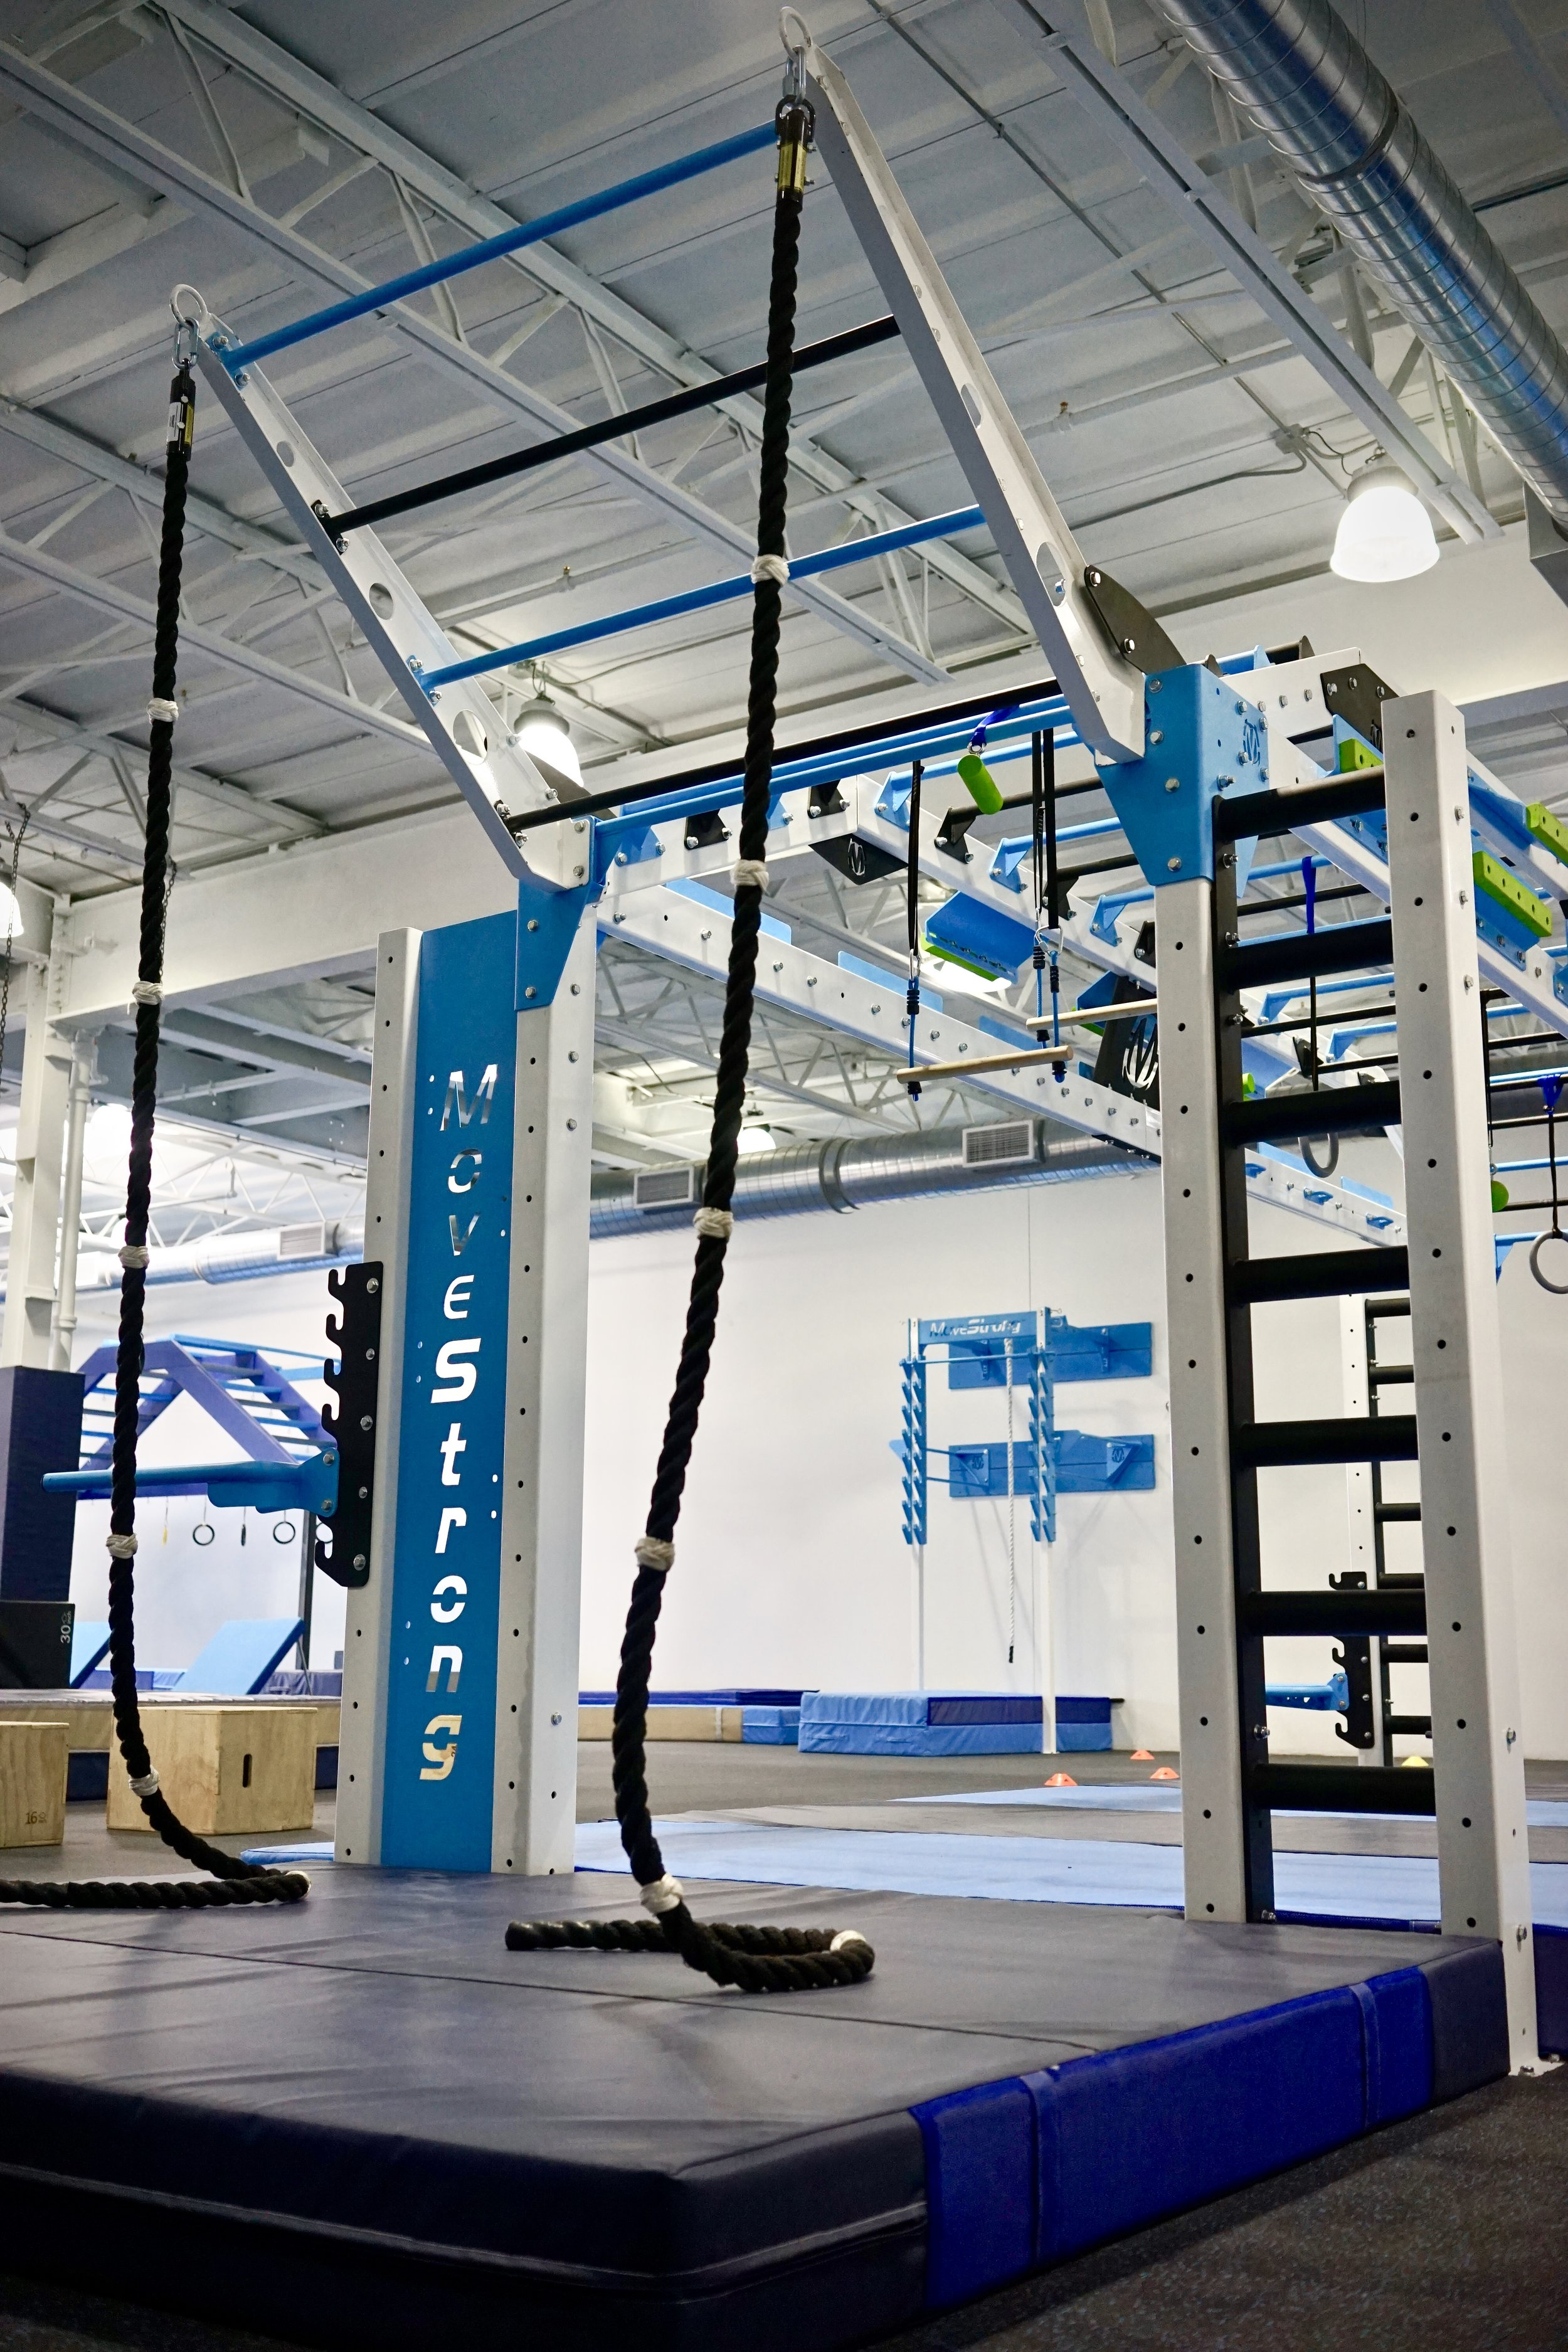 Copy of Climbing ropes fitness ninja warrior training